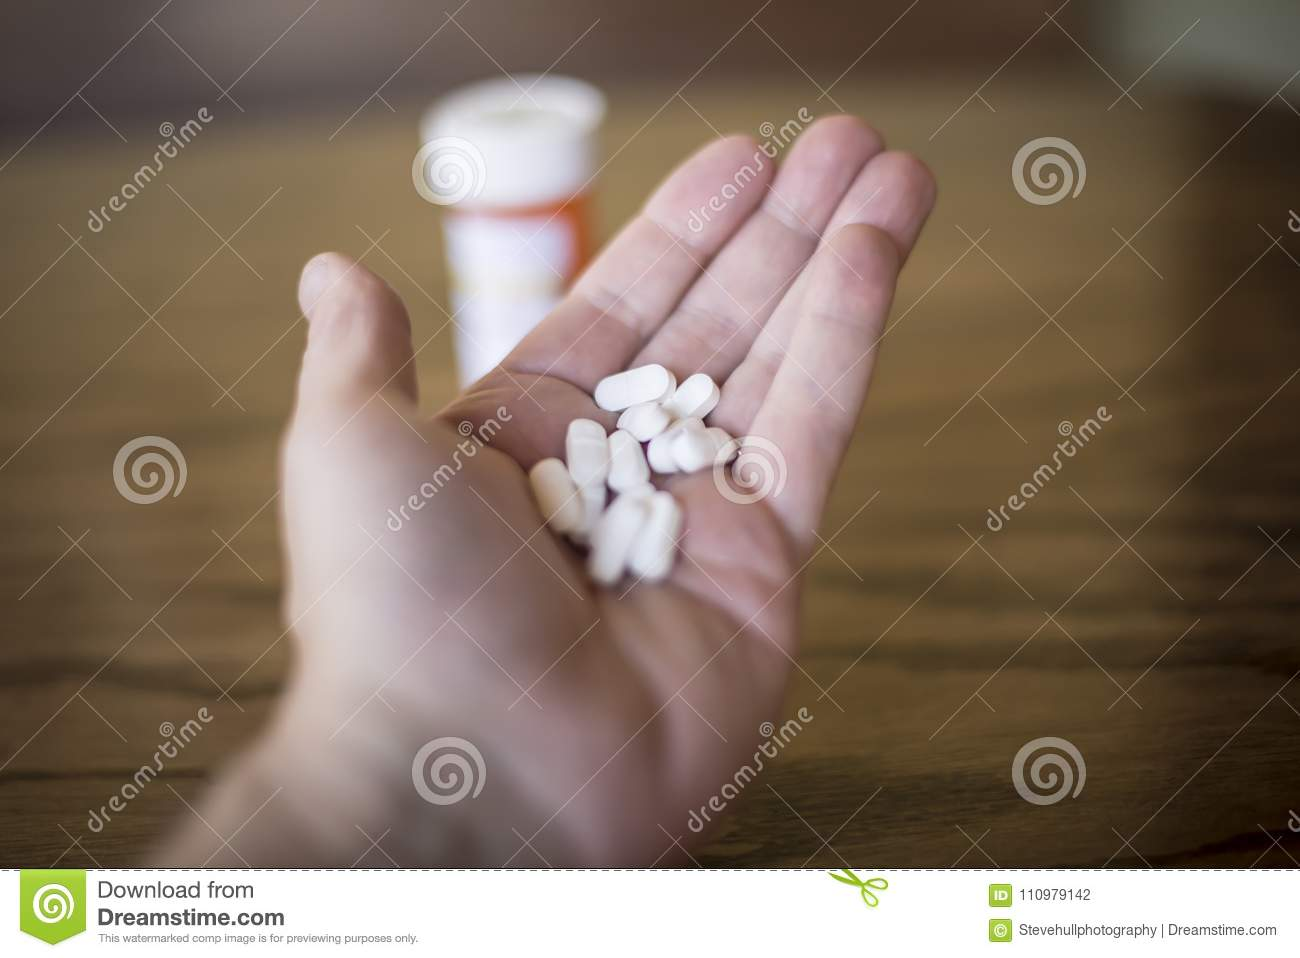 Handful of White Opioid Painkillers